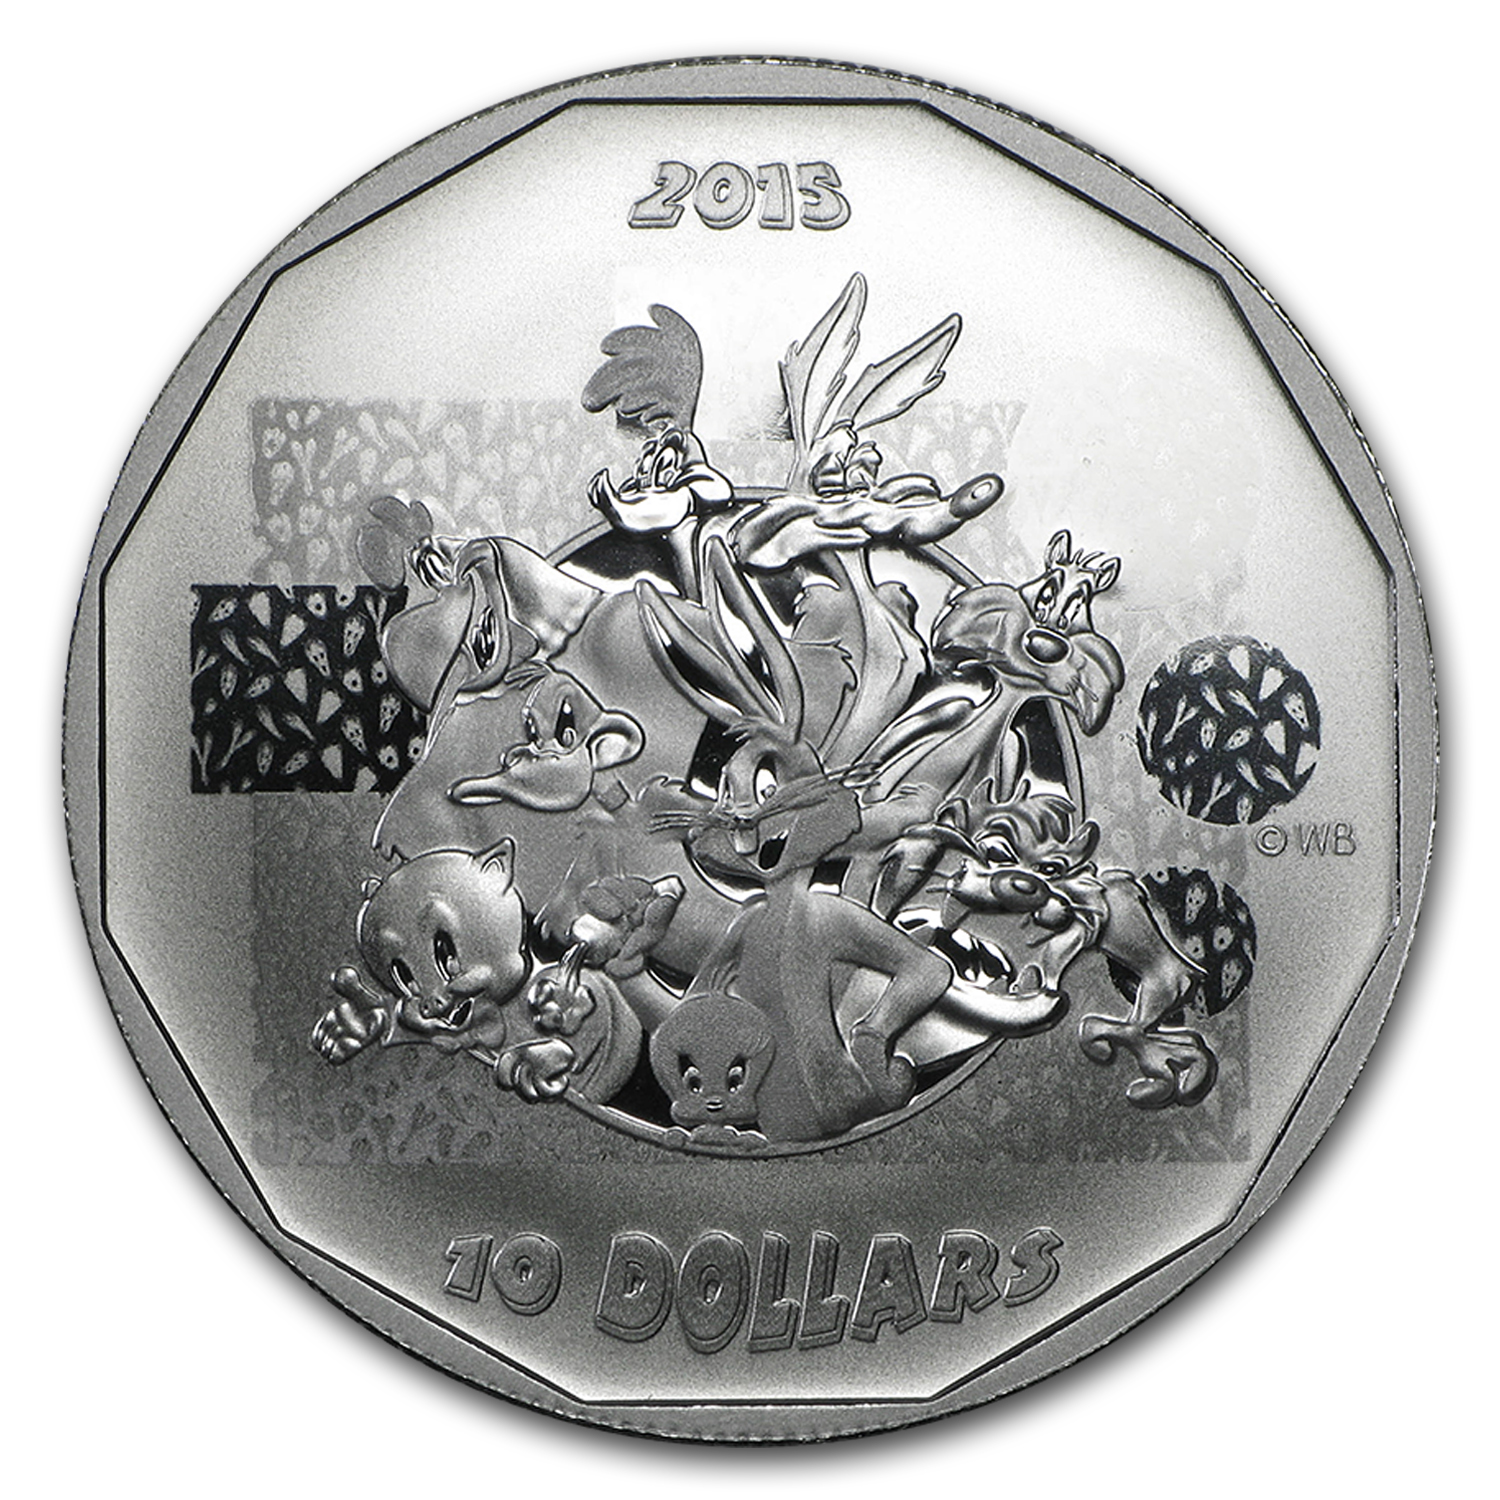 2015 Canada 1/2 oz Silver $10 Looney Tunes That's All Folks!